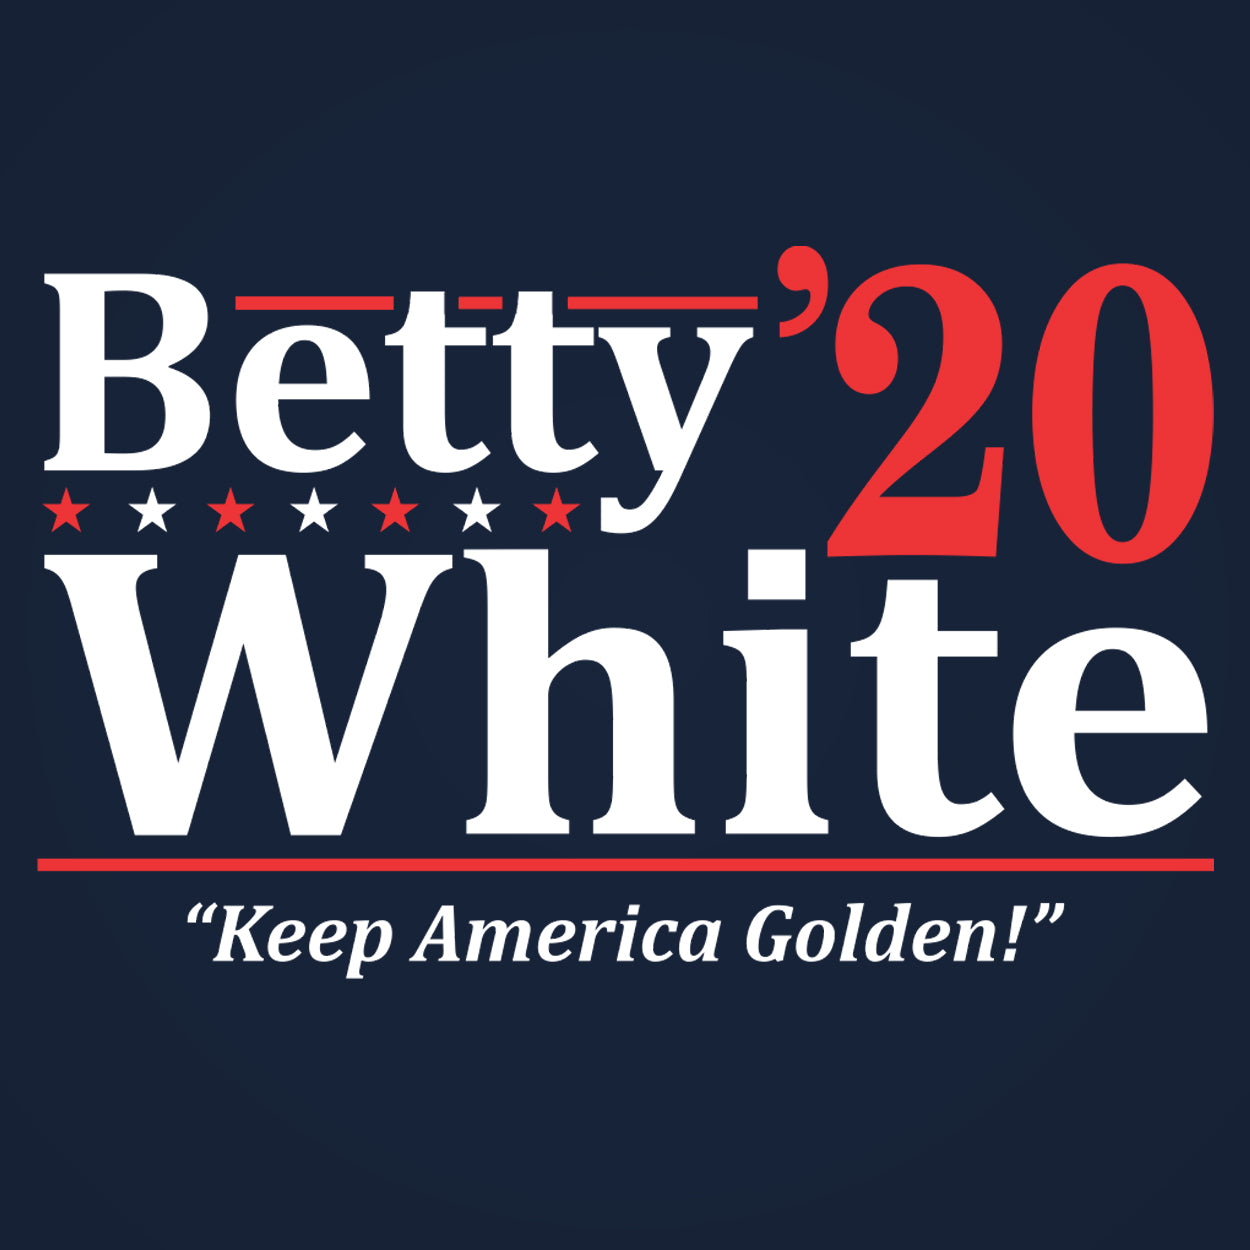 Betty White 2020 ELECTION - DonkeyTees